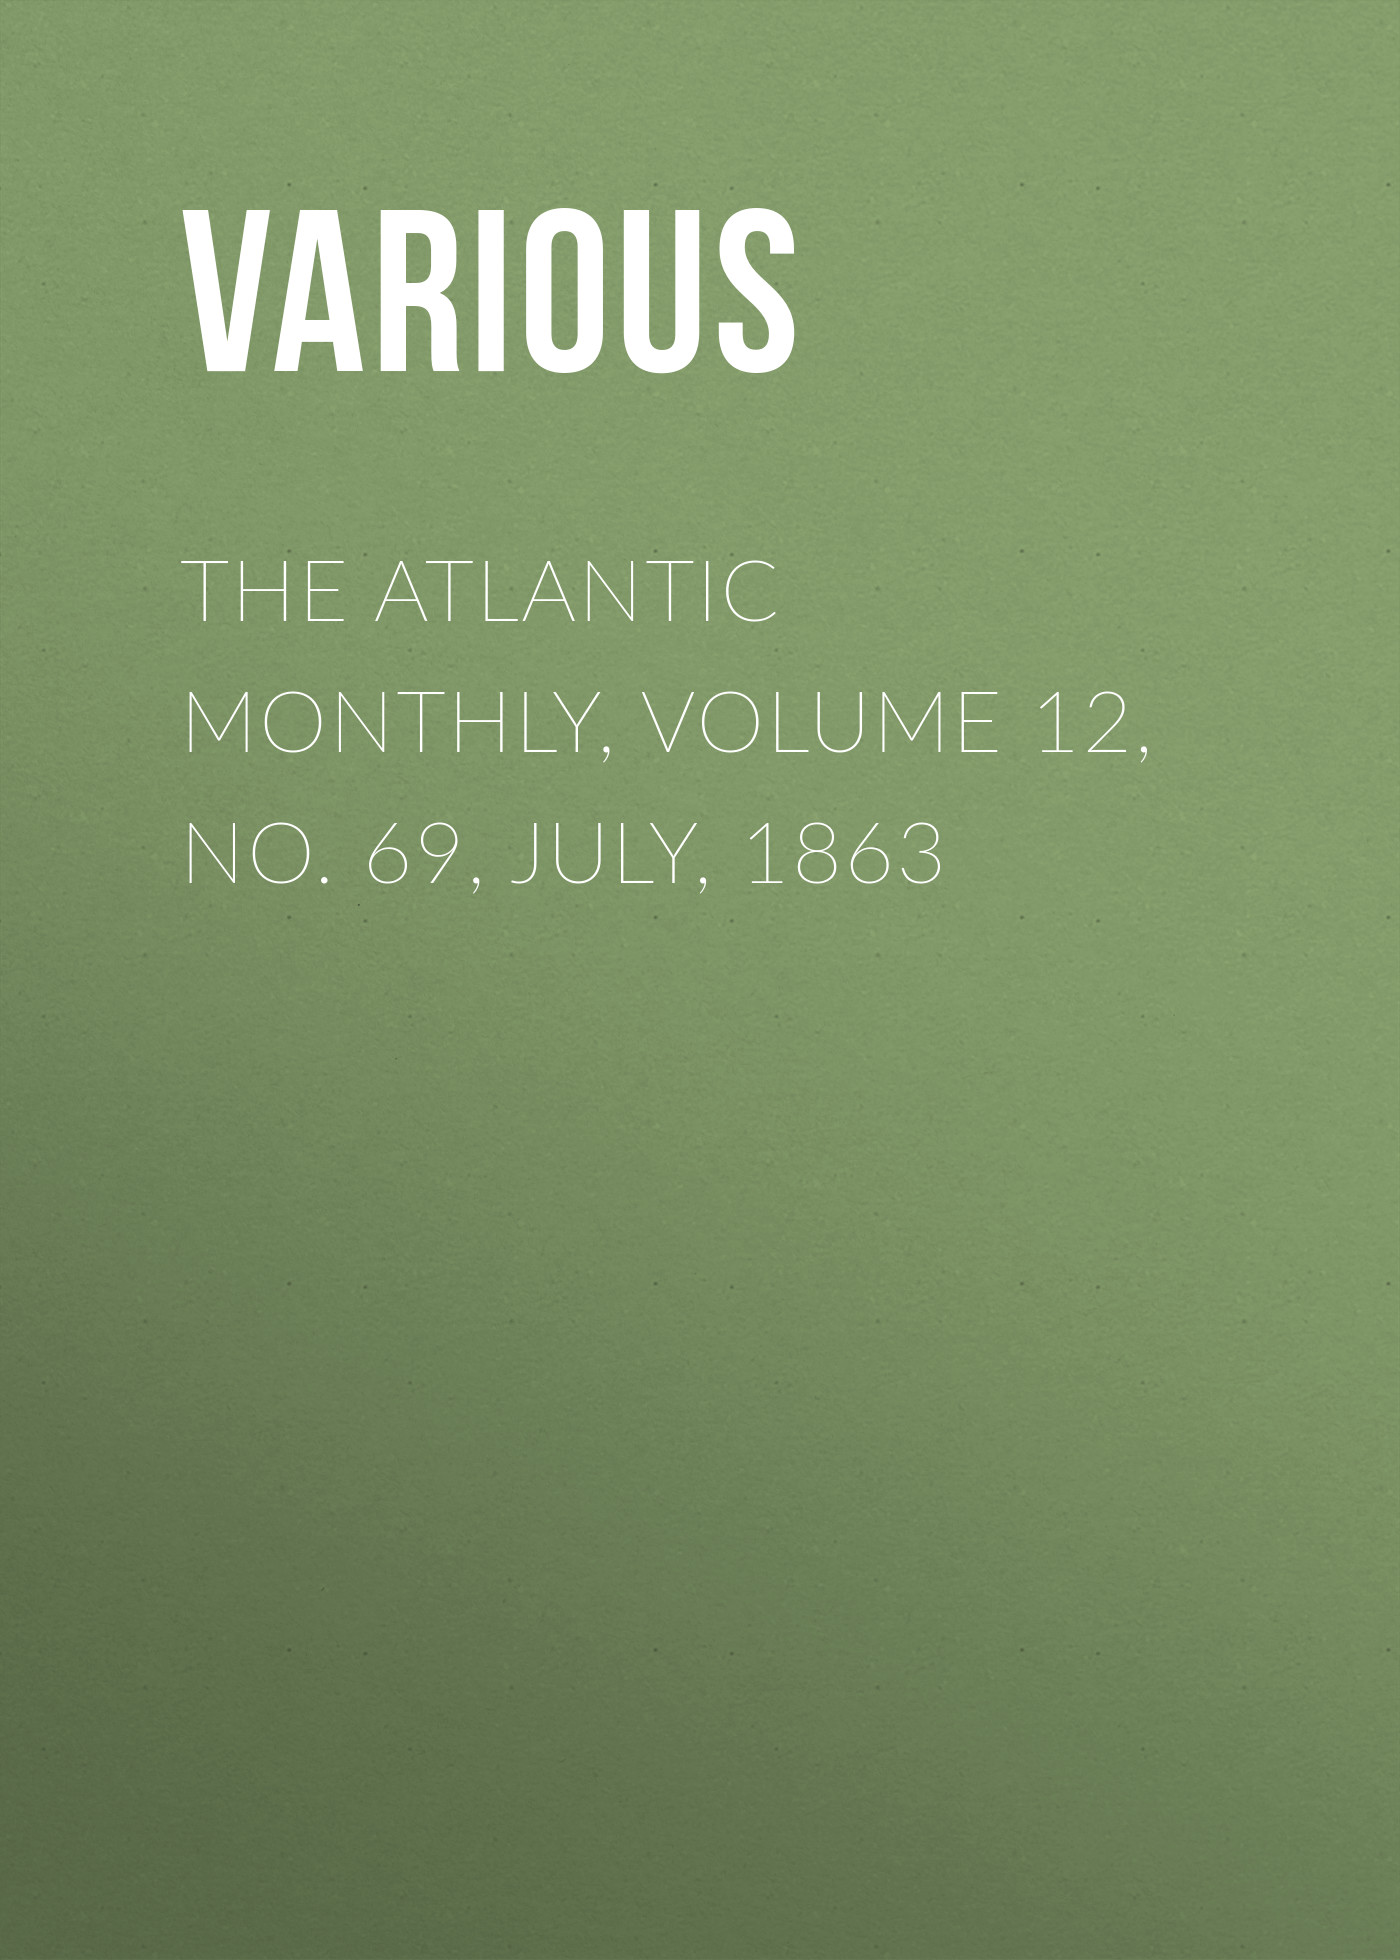 Various The Atlantic Monthly, Volume 12, No. 69, July, 1863 various the atlantic monthly volume 11 no 63 january 1863